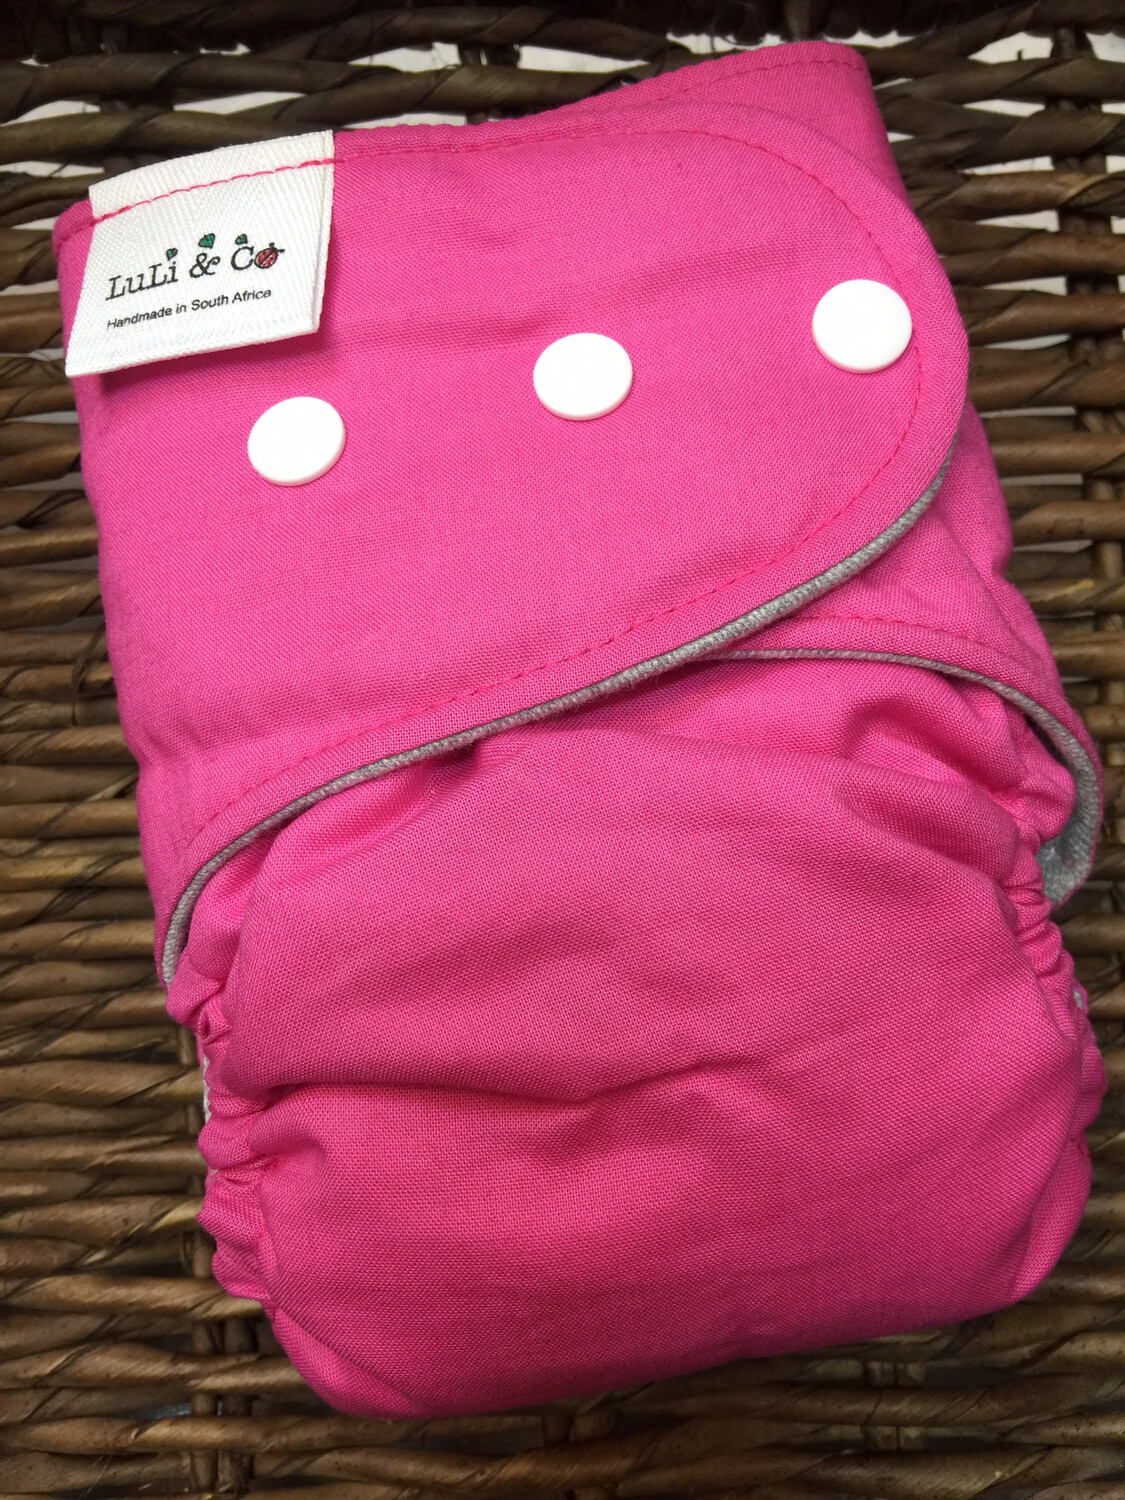 Snap In One-Candy Pink (Newborn)